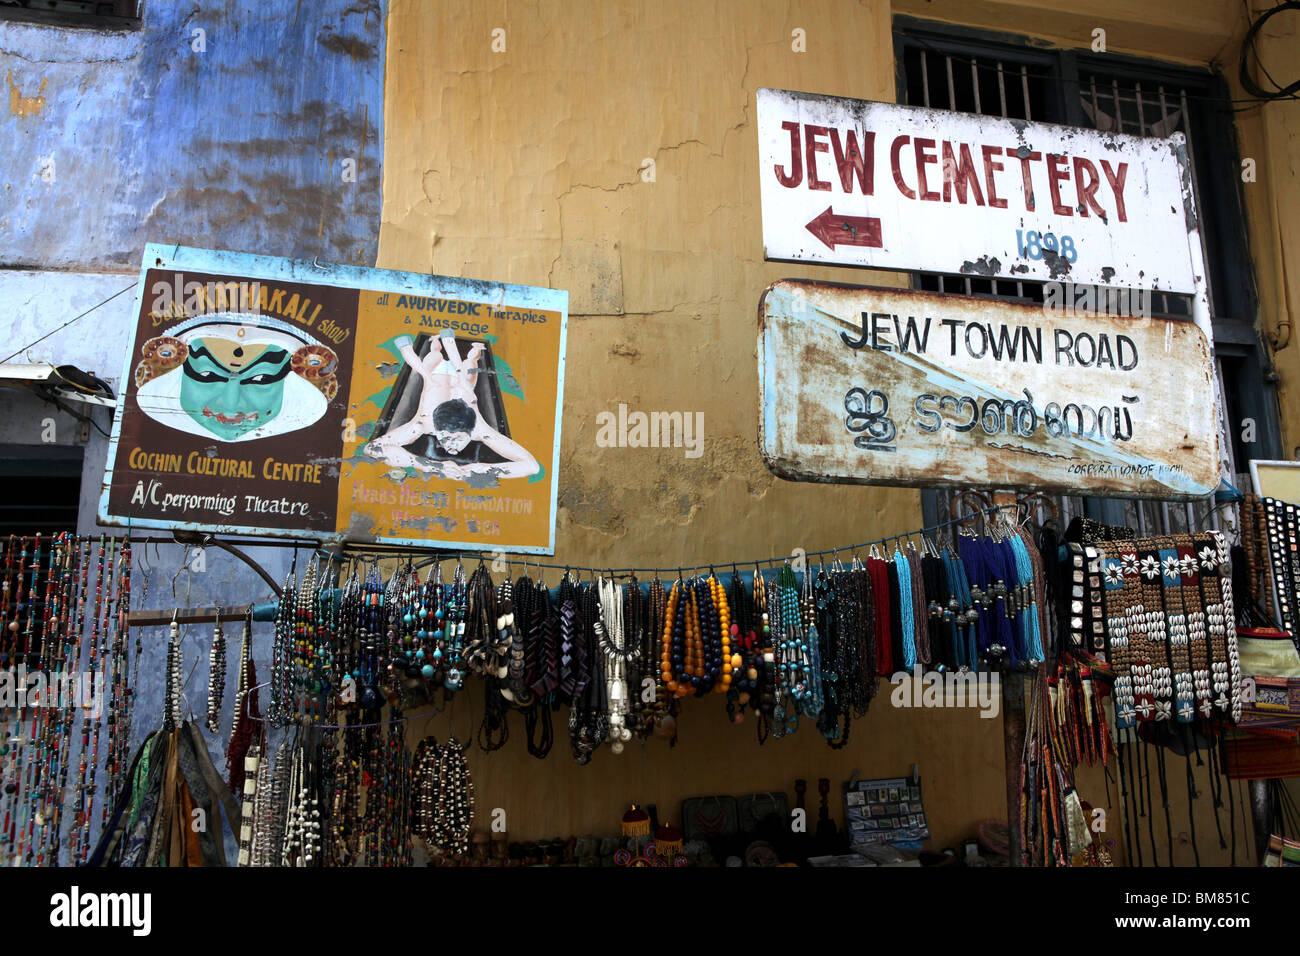 A view of the streets of Jew Town, showing religious beads on display in Kochi, formerly known as Cochin in Kerala, - Stock Image